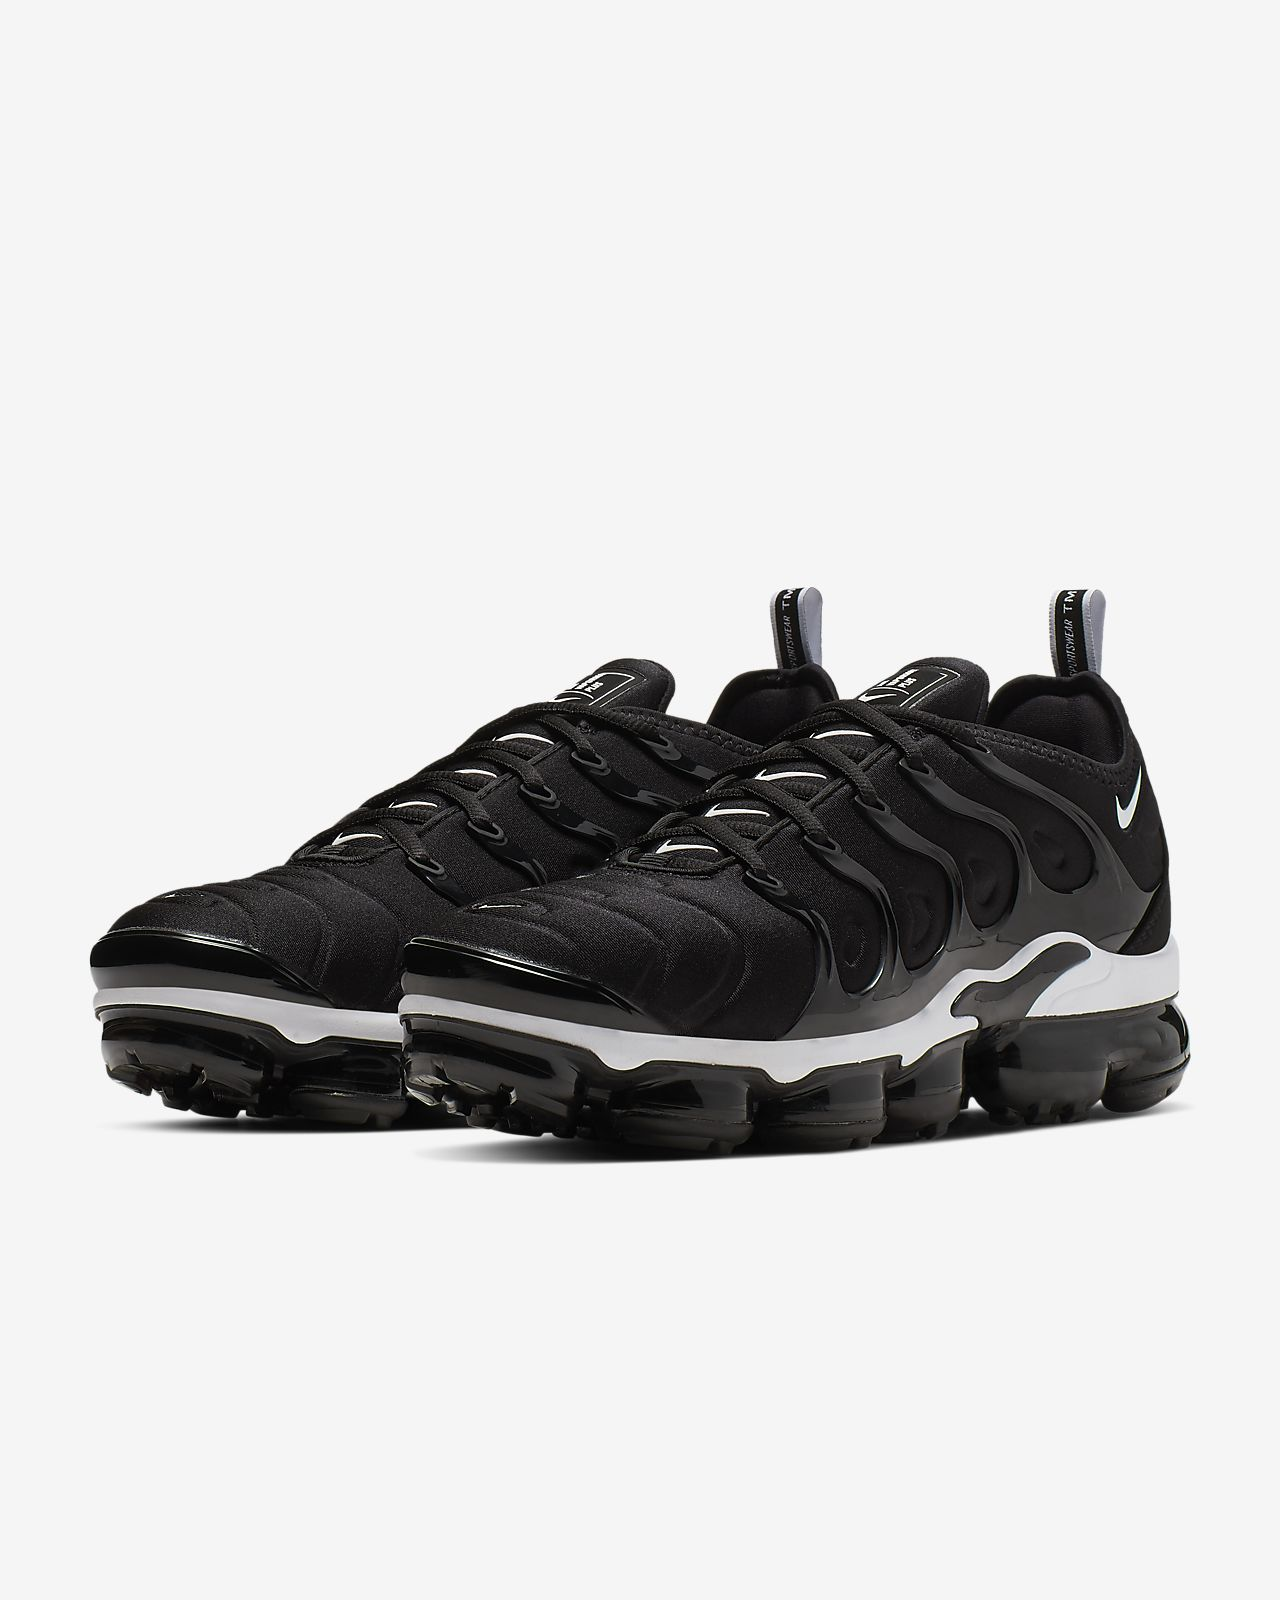 wholesale dealer a6ae8 6d27a Low Resolution Nike Air VaporMax Plus Herrenschuh Nike Air VaporMax Plus  Herrenschuh